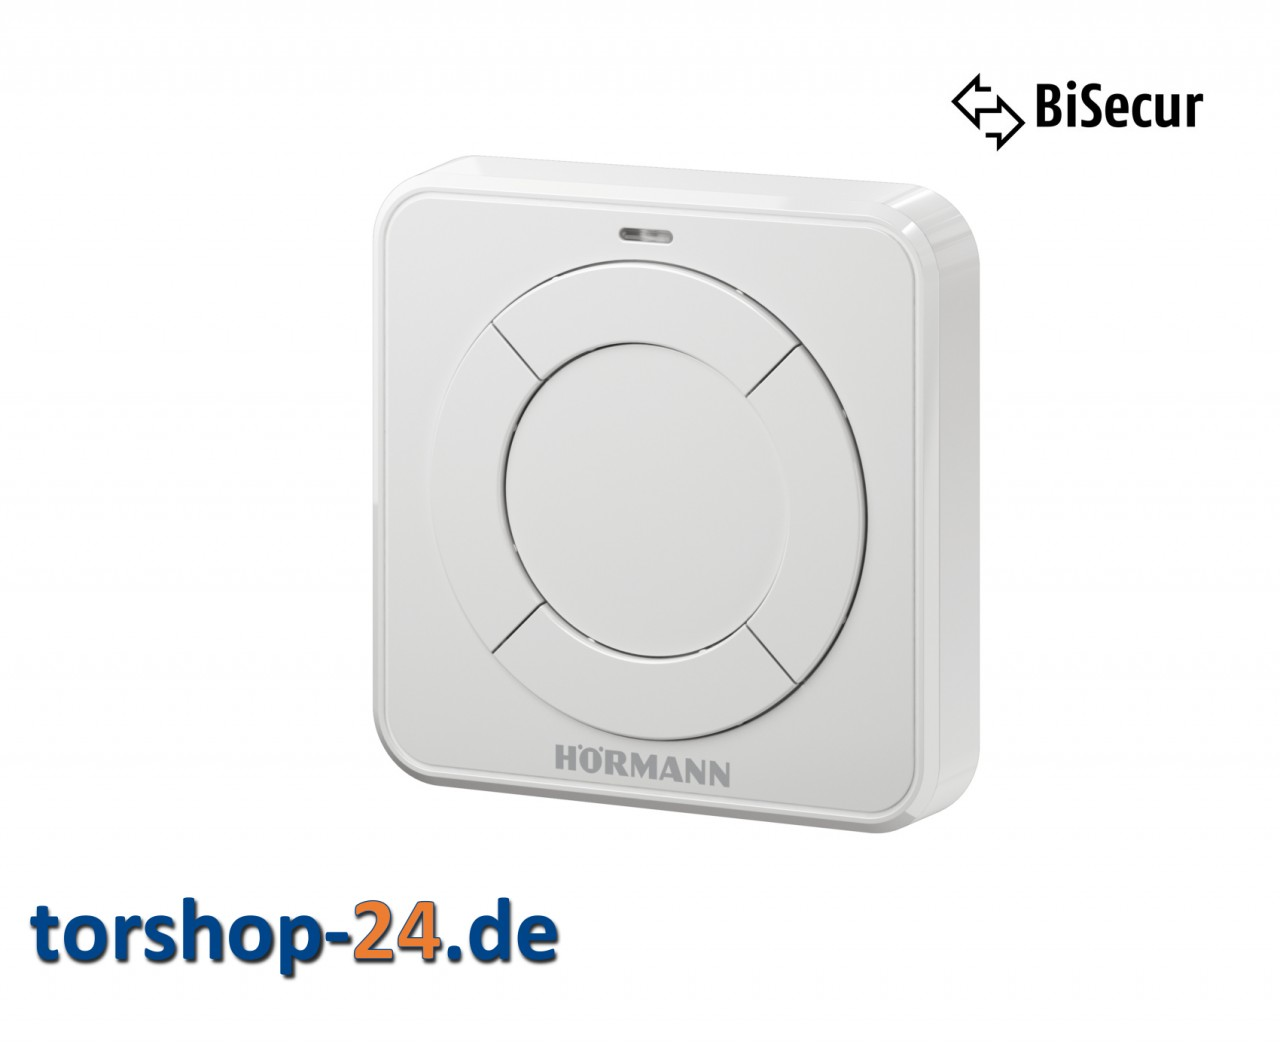 Hormann Wireless Push Button FIT 4 BS Smart Home BiSecur